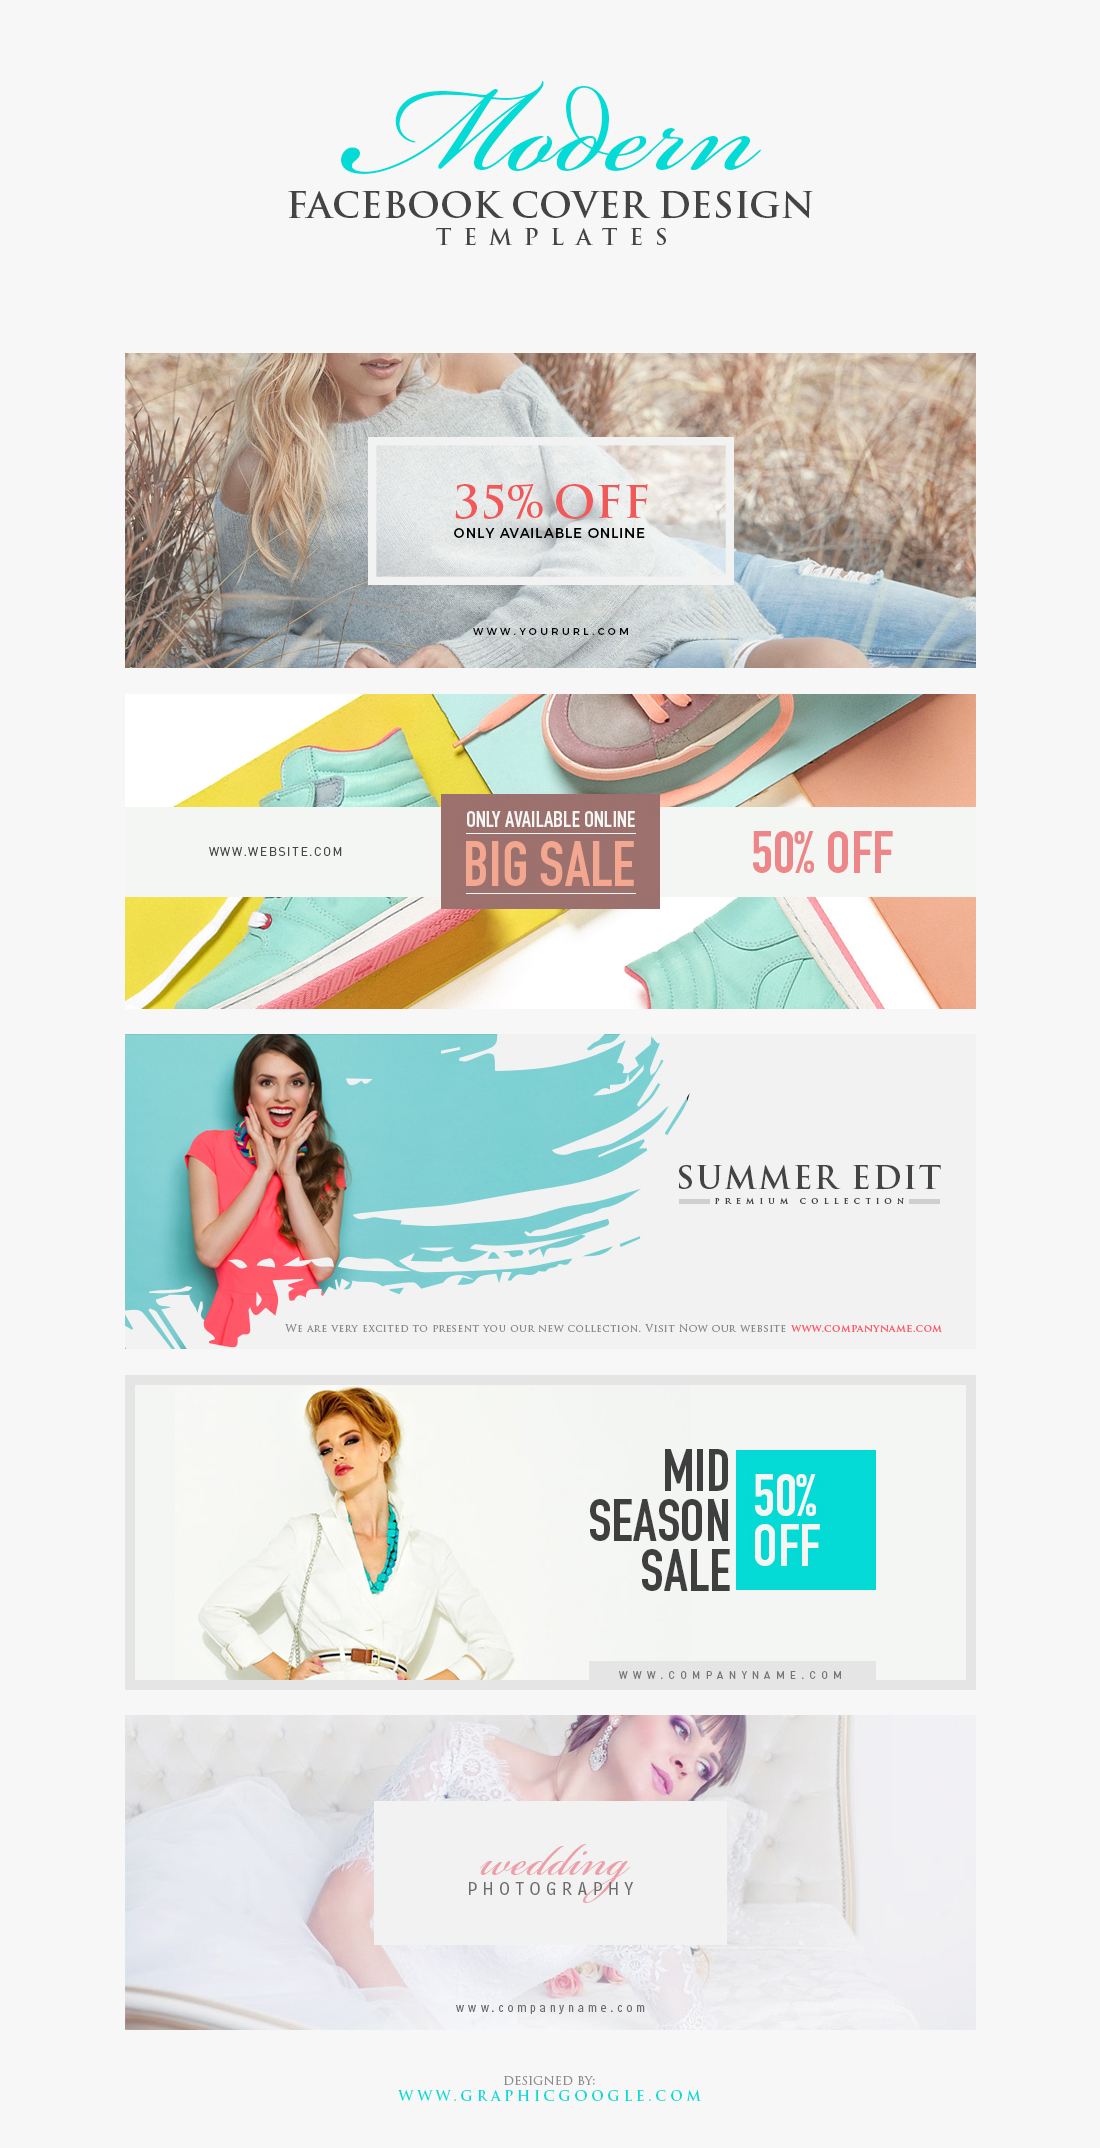 5-Free-Modern-Facebook-Cover-Design-Templates